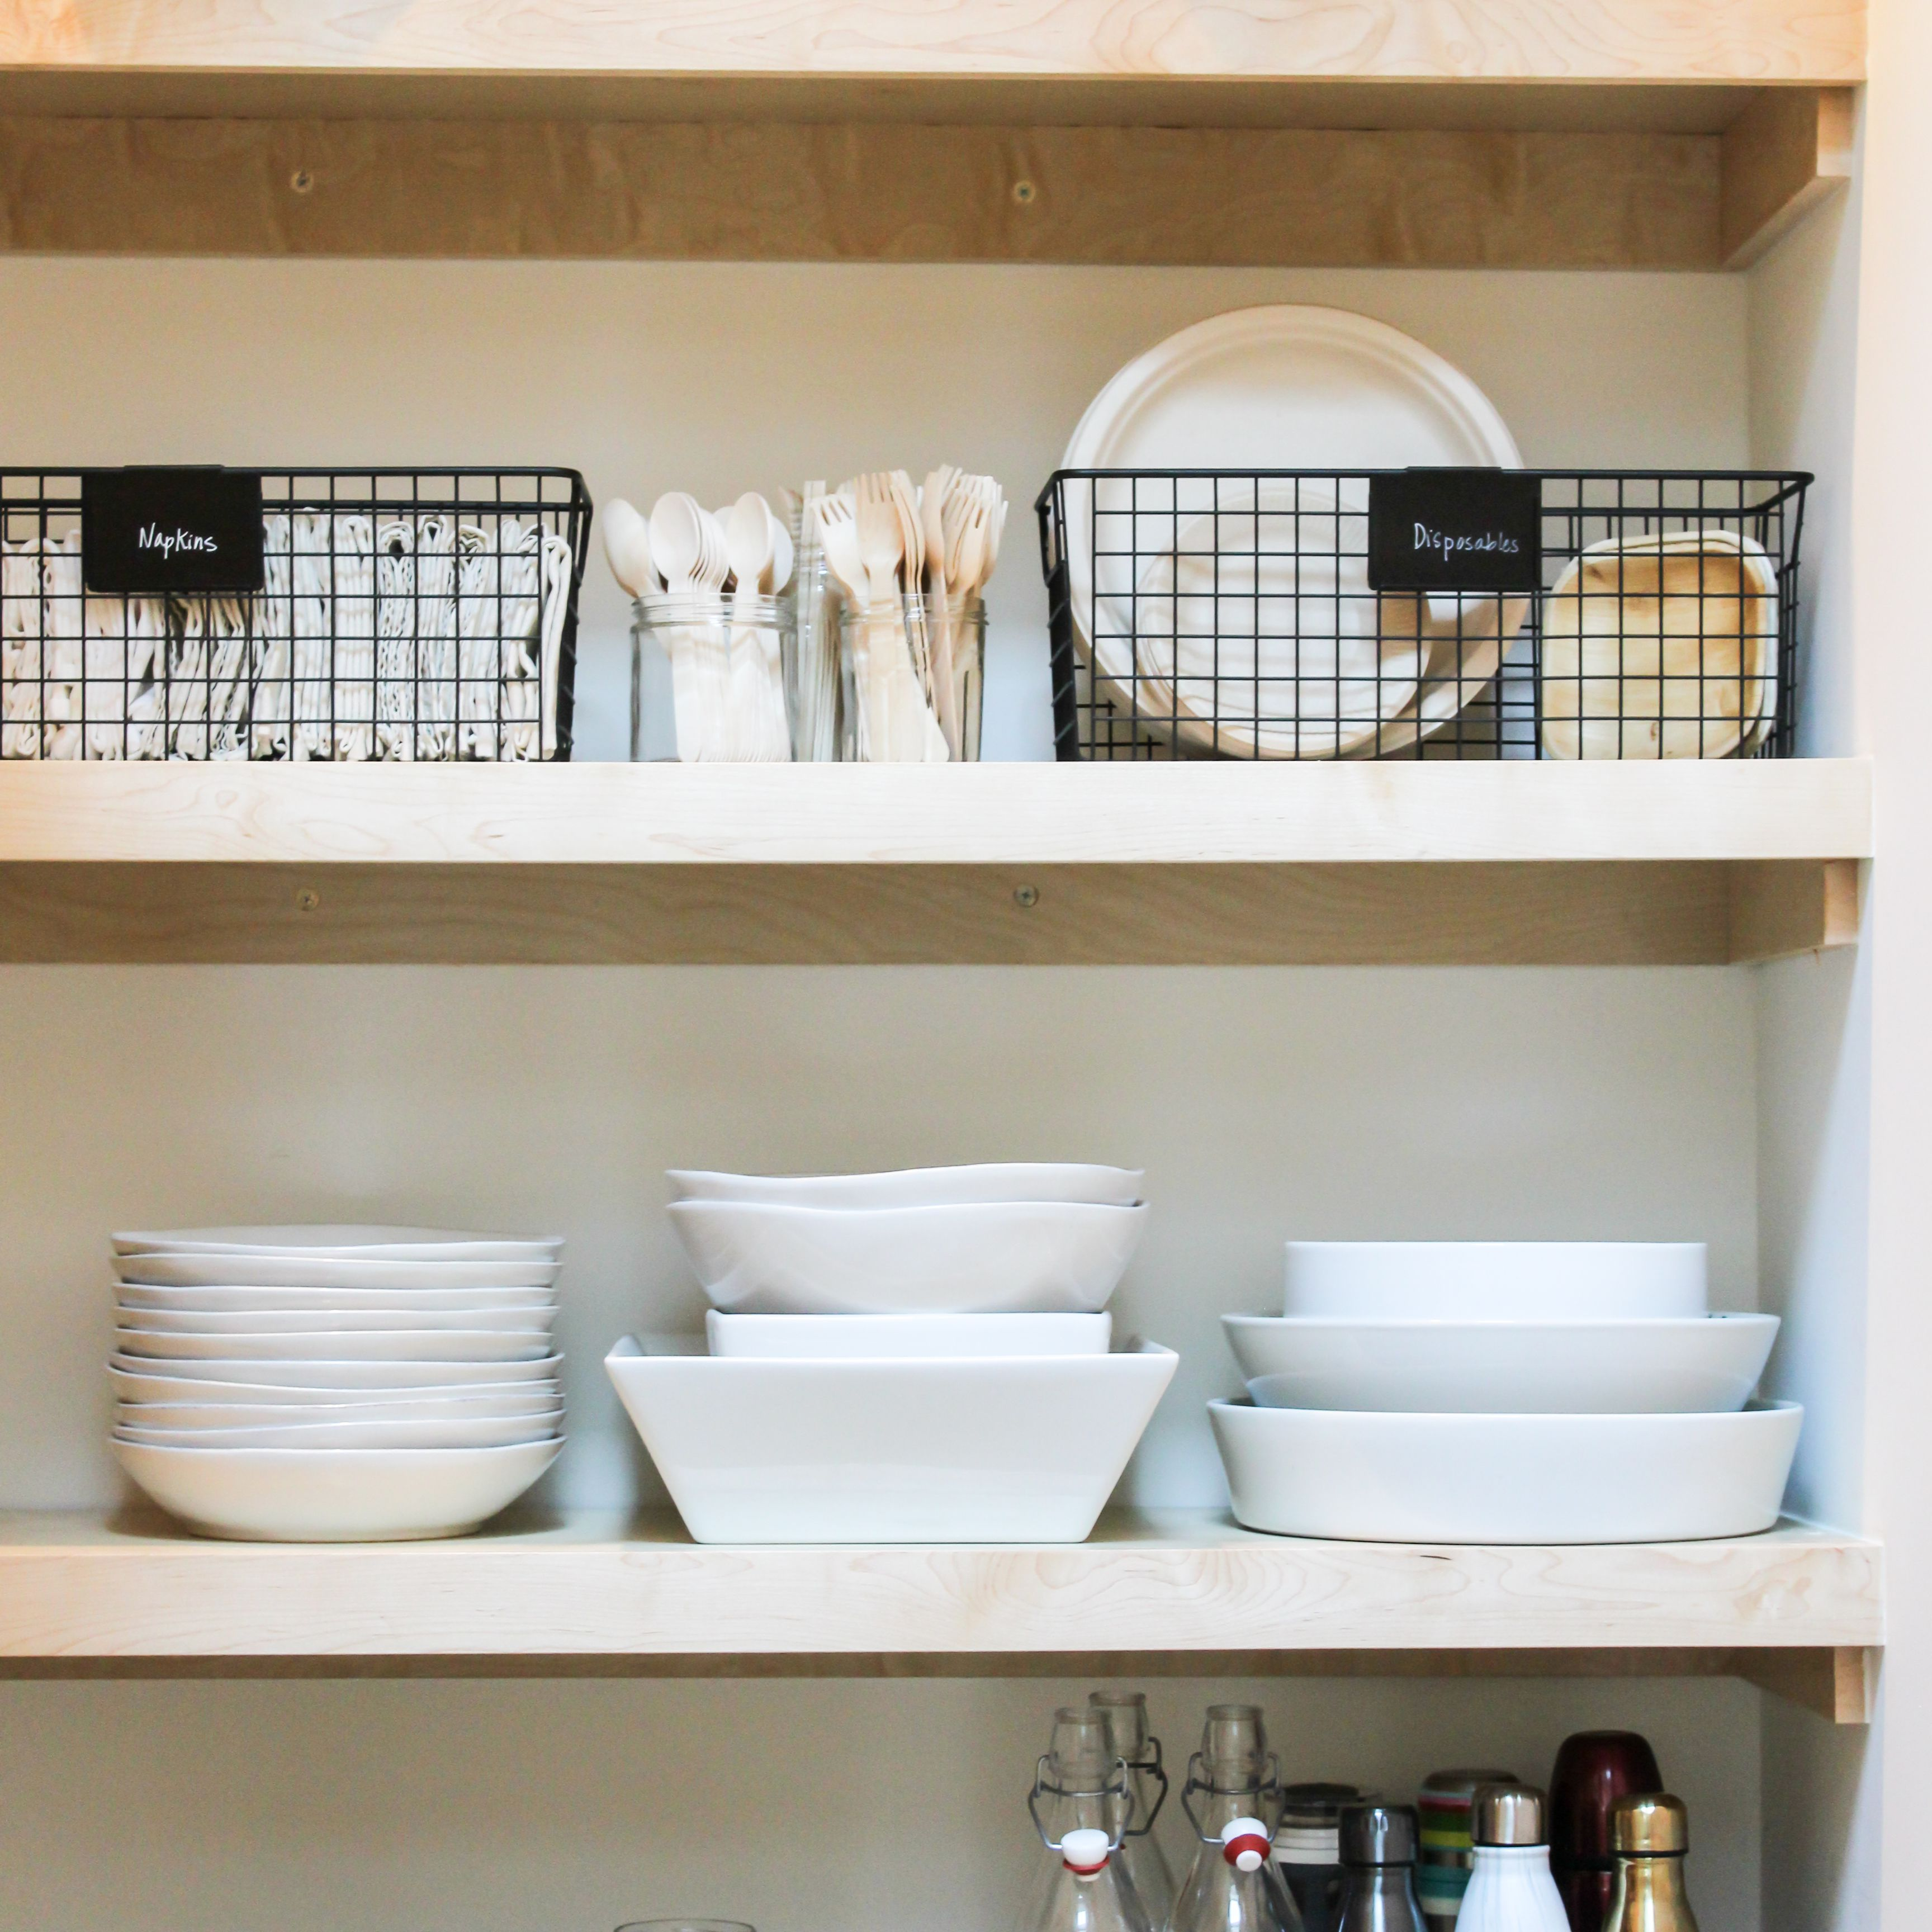 Shelving with organized plates, silverware, glasses, and water bottles